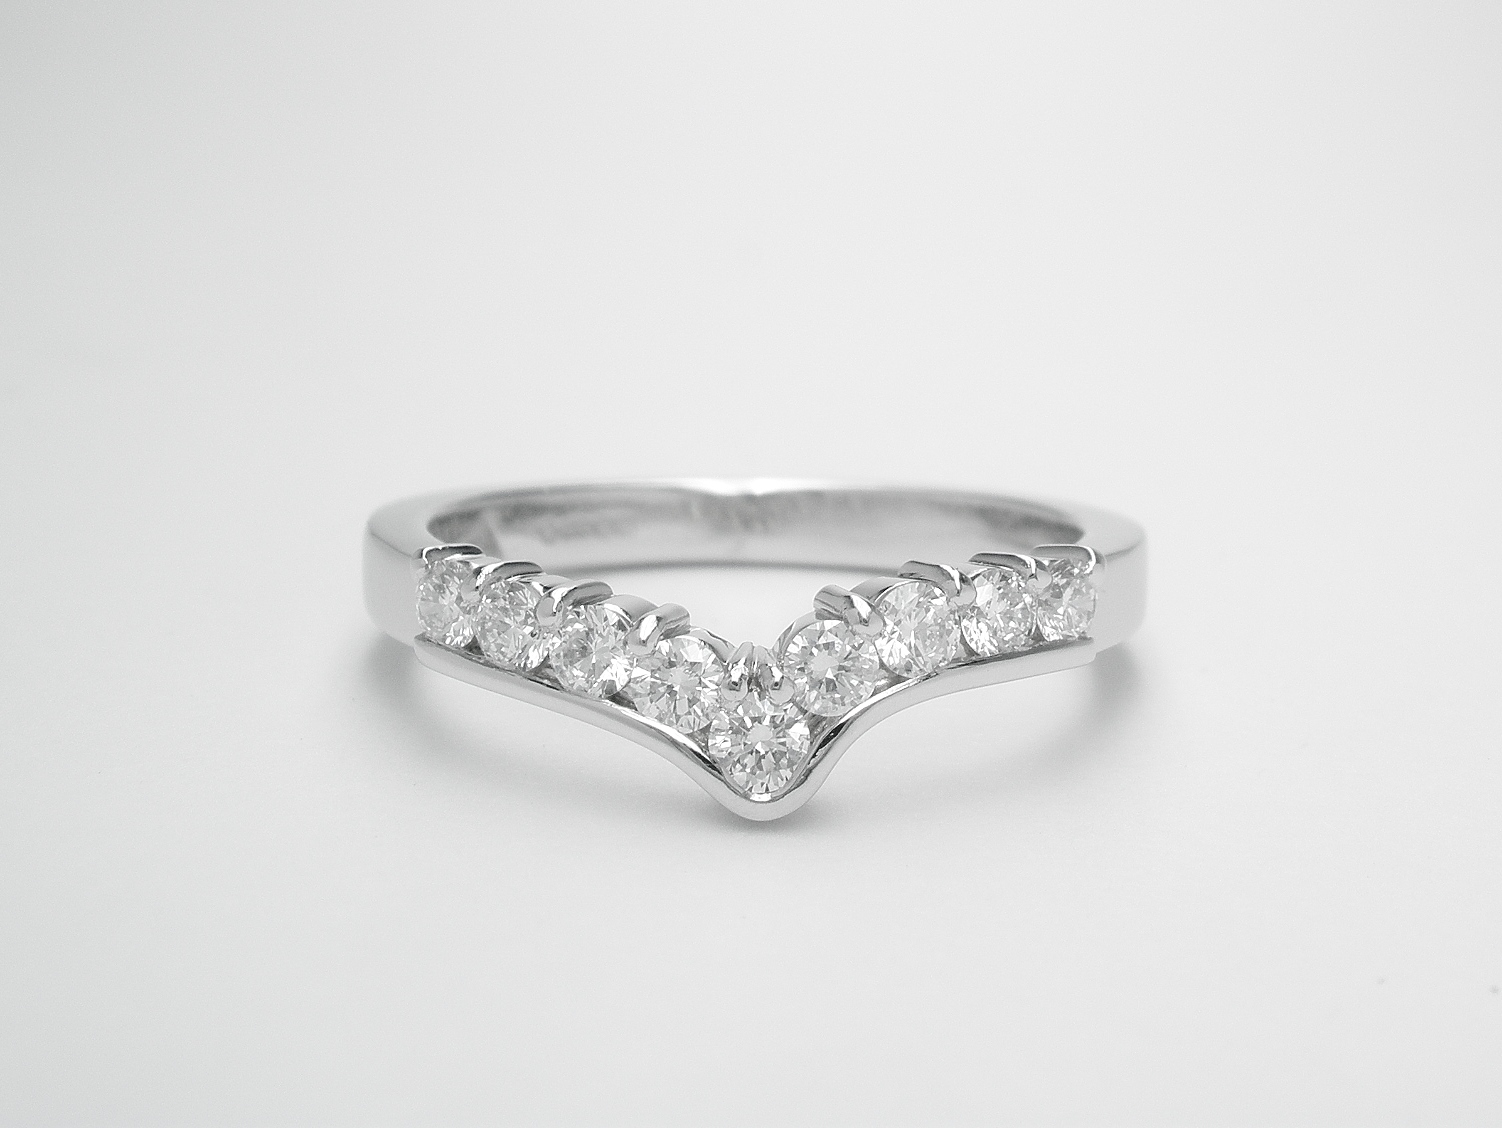 A 9 stone round brilliant cut diamond part channel set shaped eternity ring mounted in platinum.